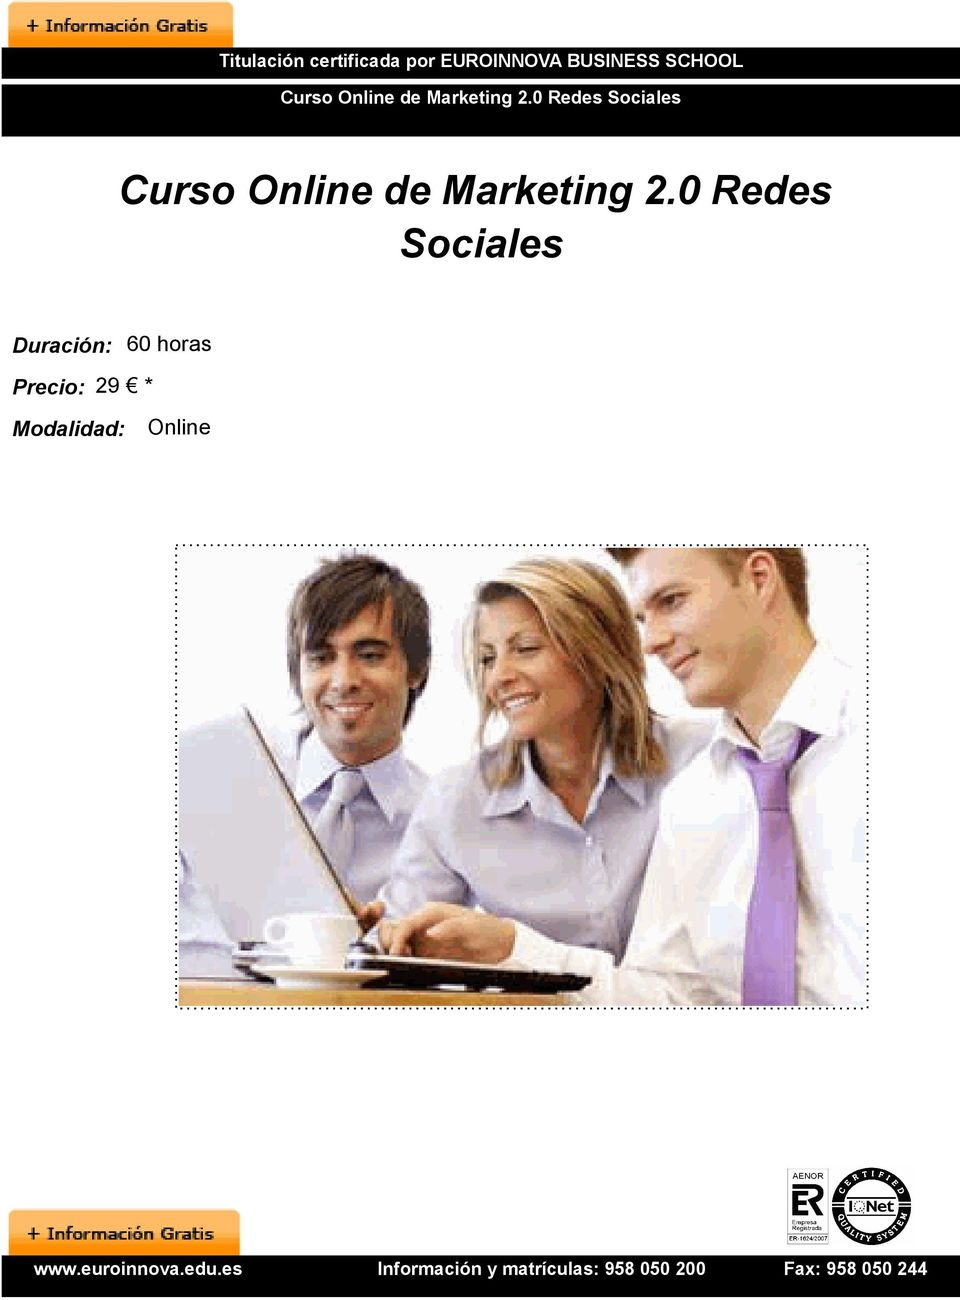 0 Redes Sociales Curso Online de Marketing 2.